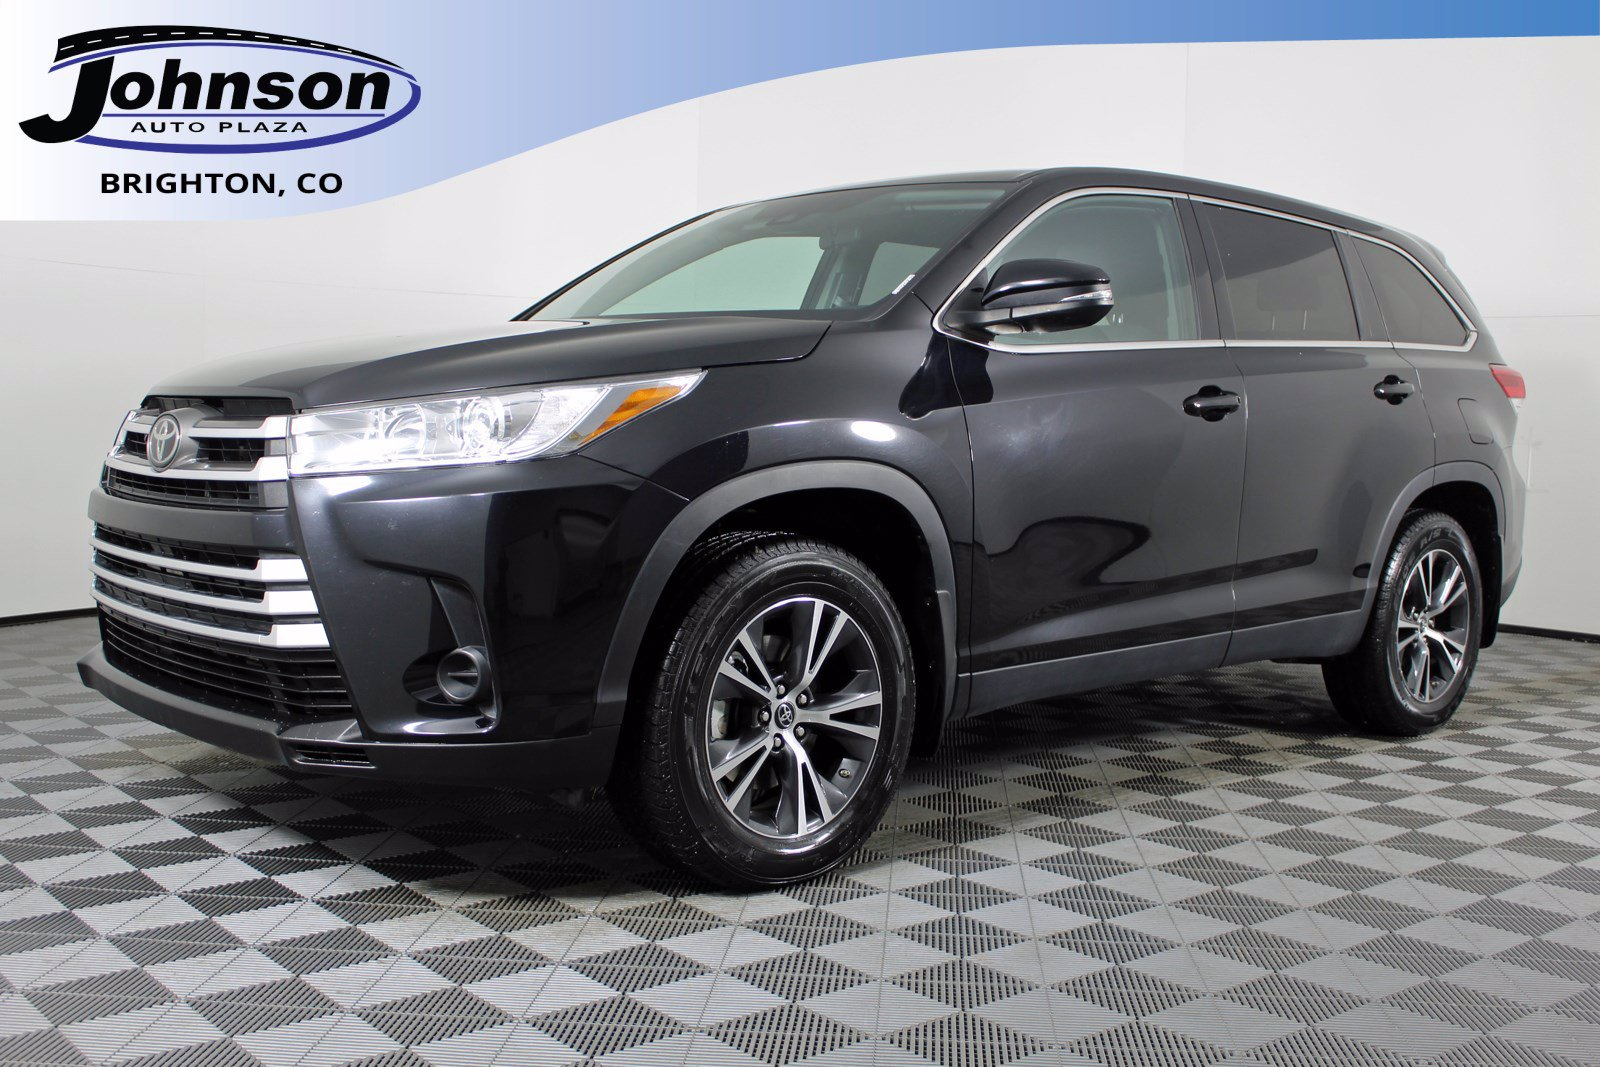 Used Toyota Highlander Brighton Co